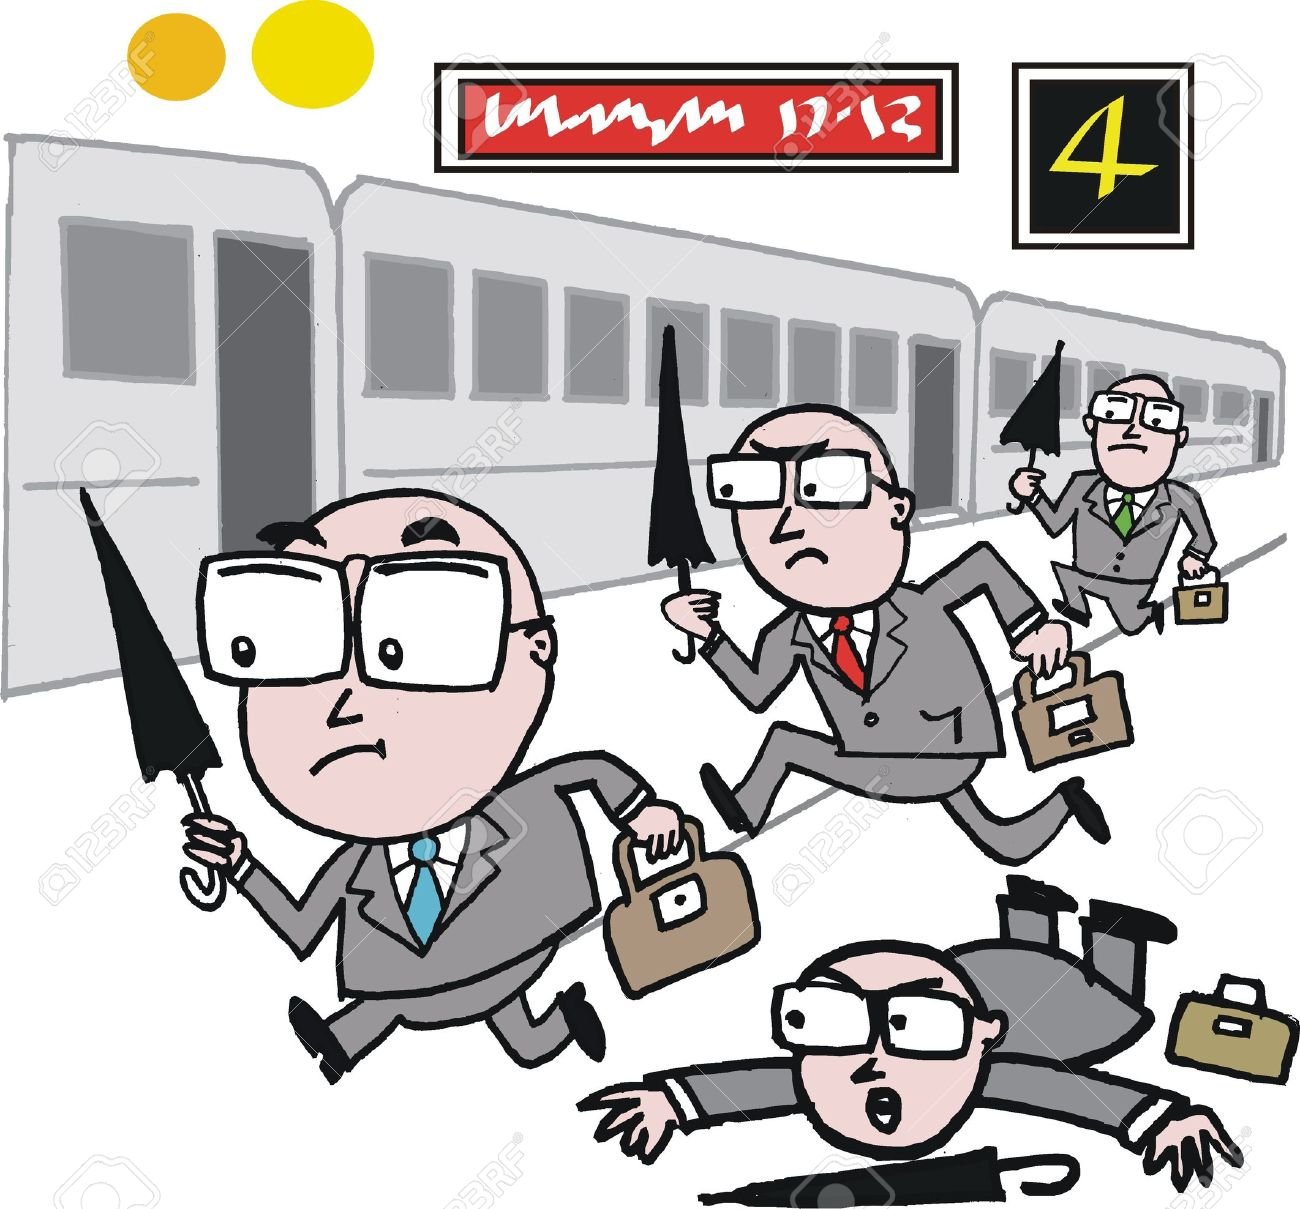 cartoon of business men rushing to catch train Stock Vector - 12233392